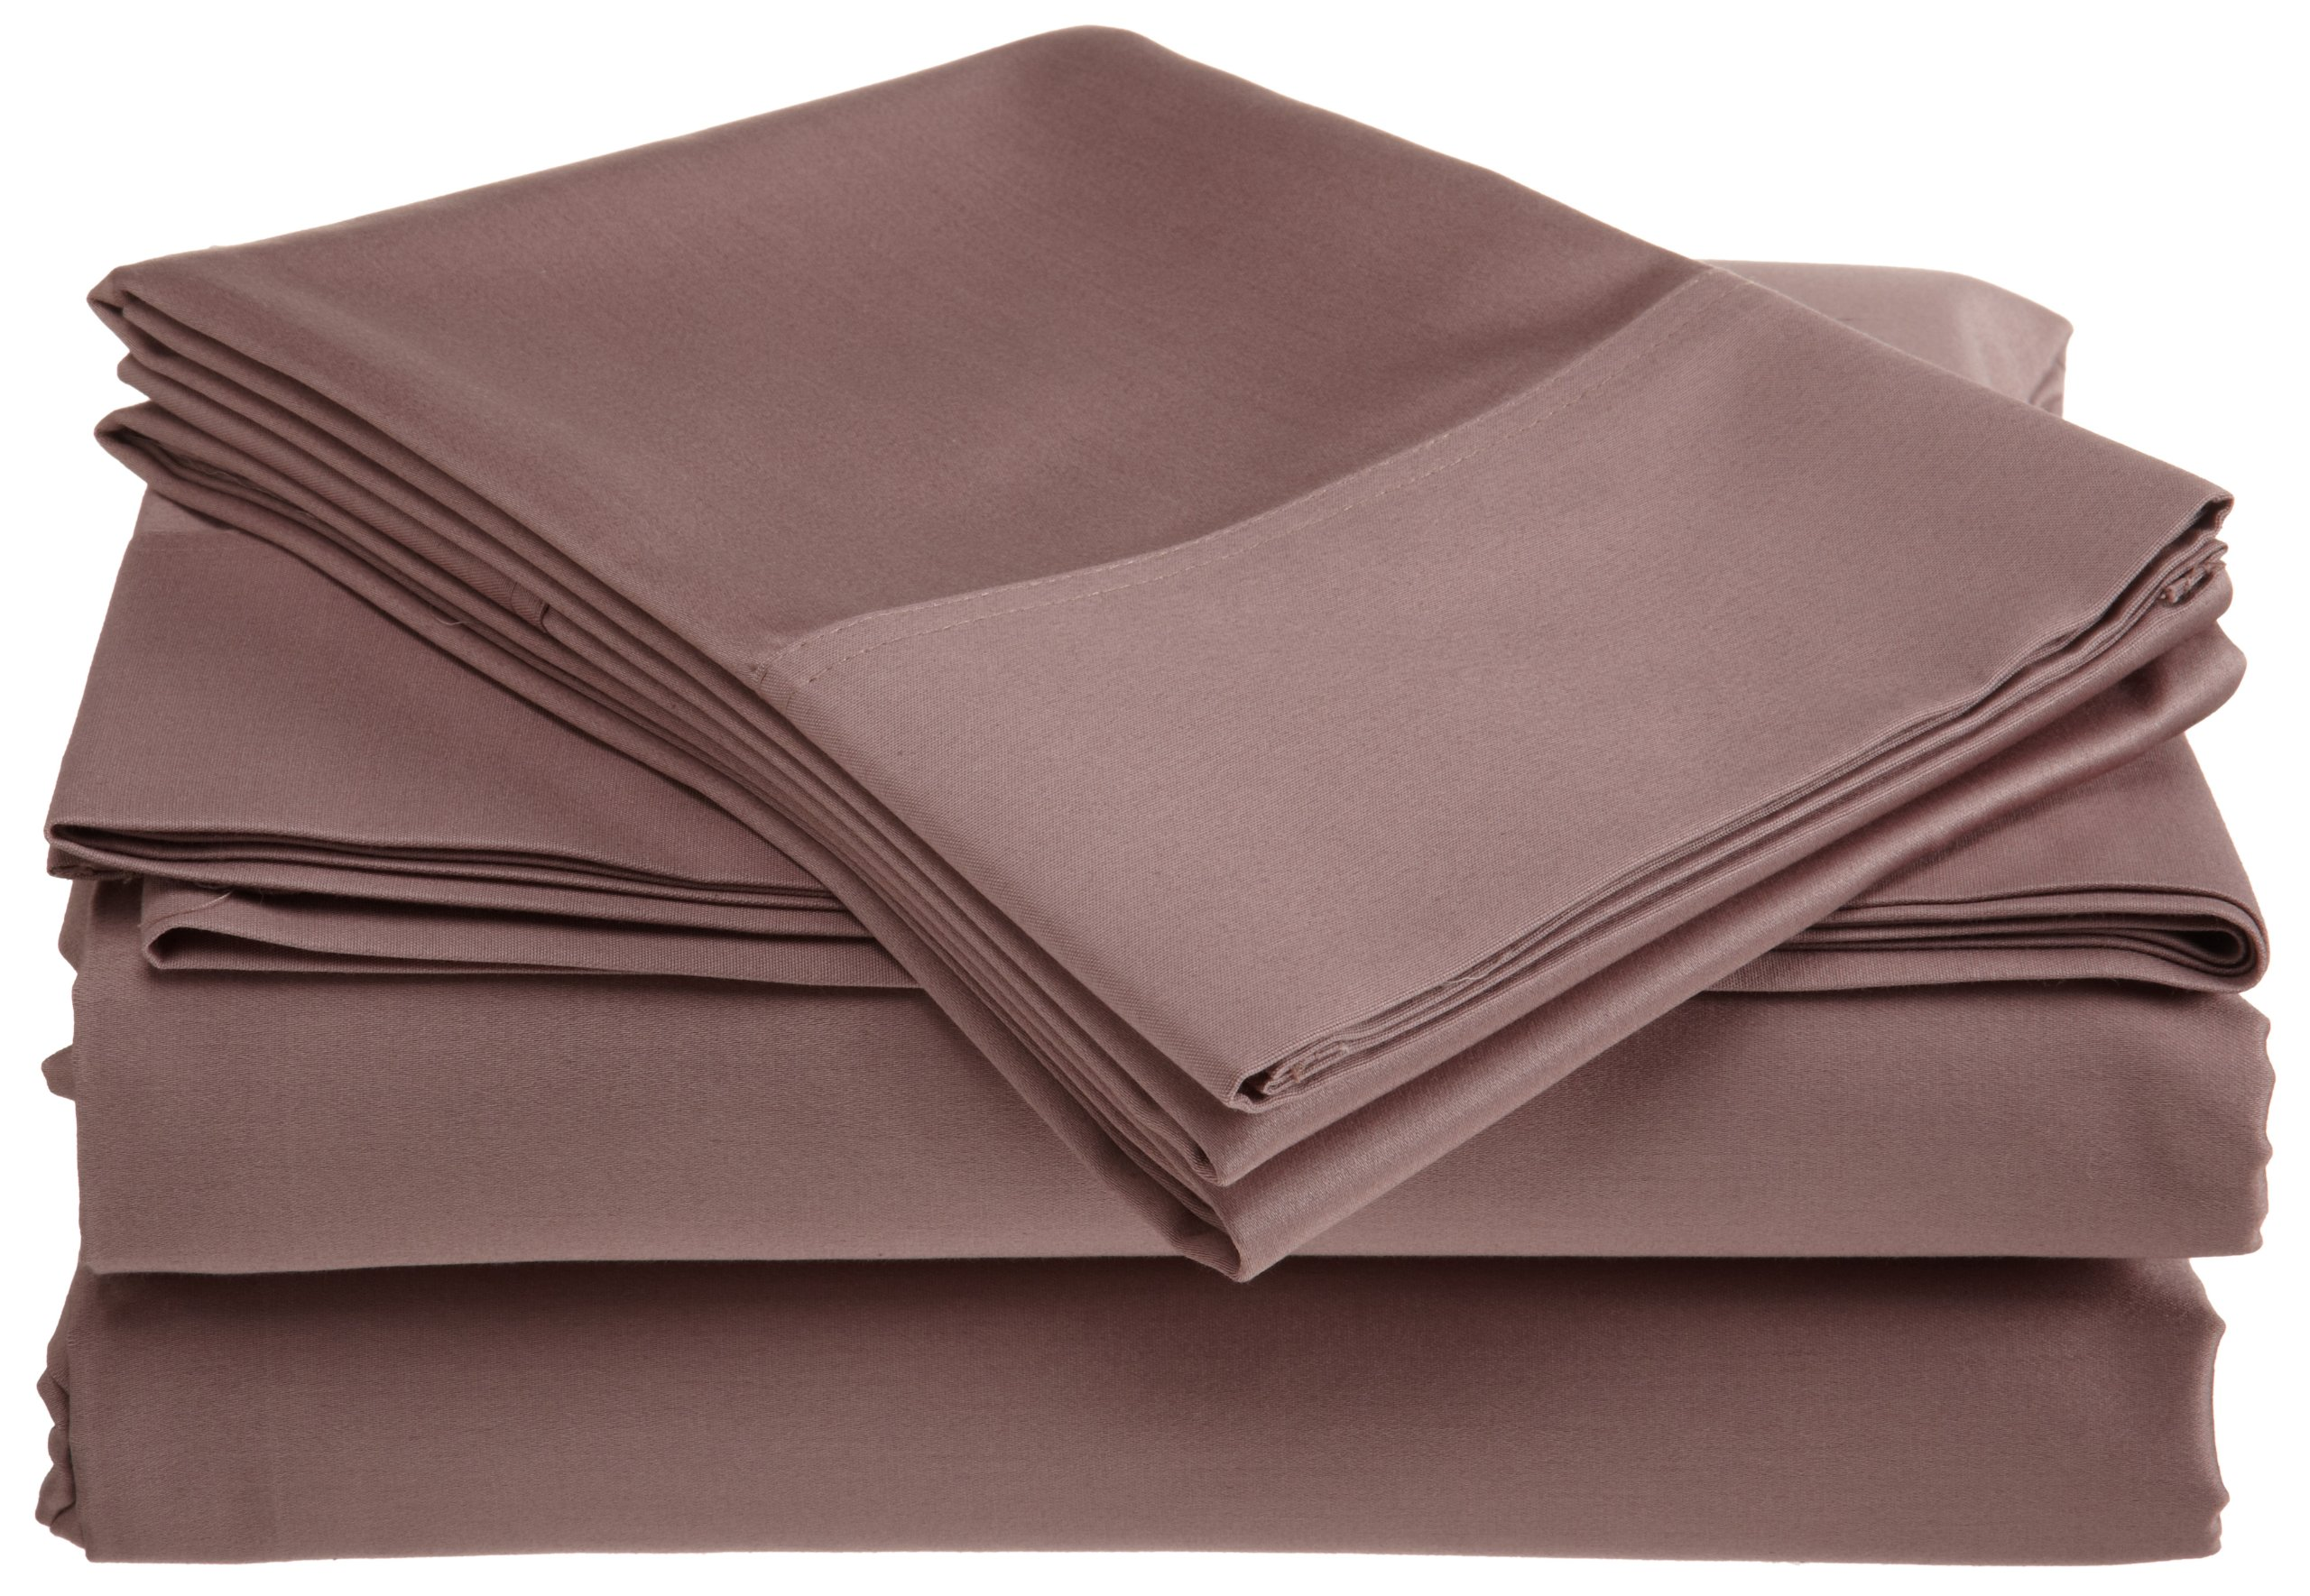 Belle Epoque 500 Thread Count Supima Cotton Sheet Set, Wood Rose, Cal-King